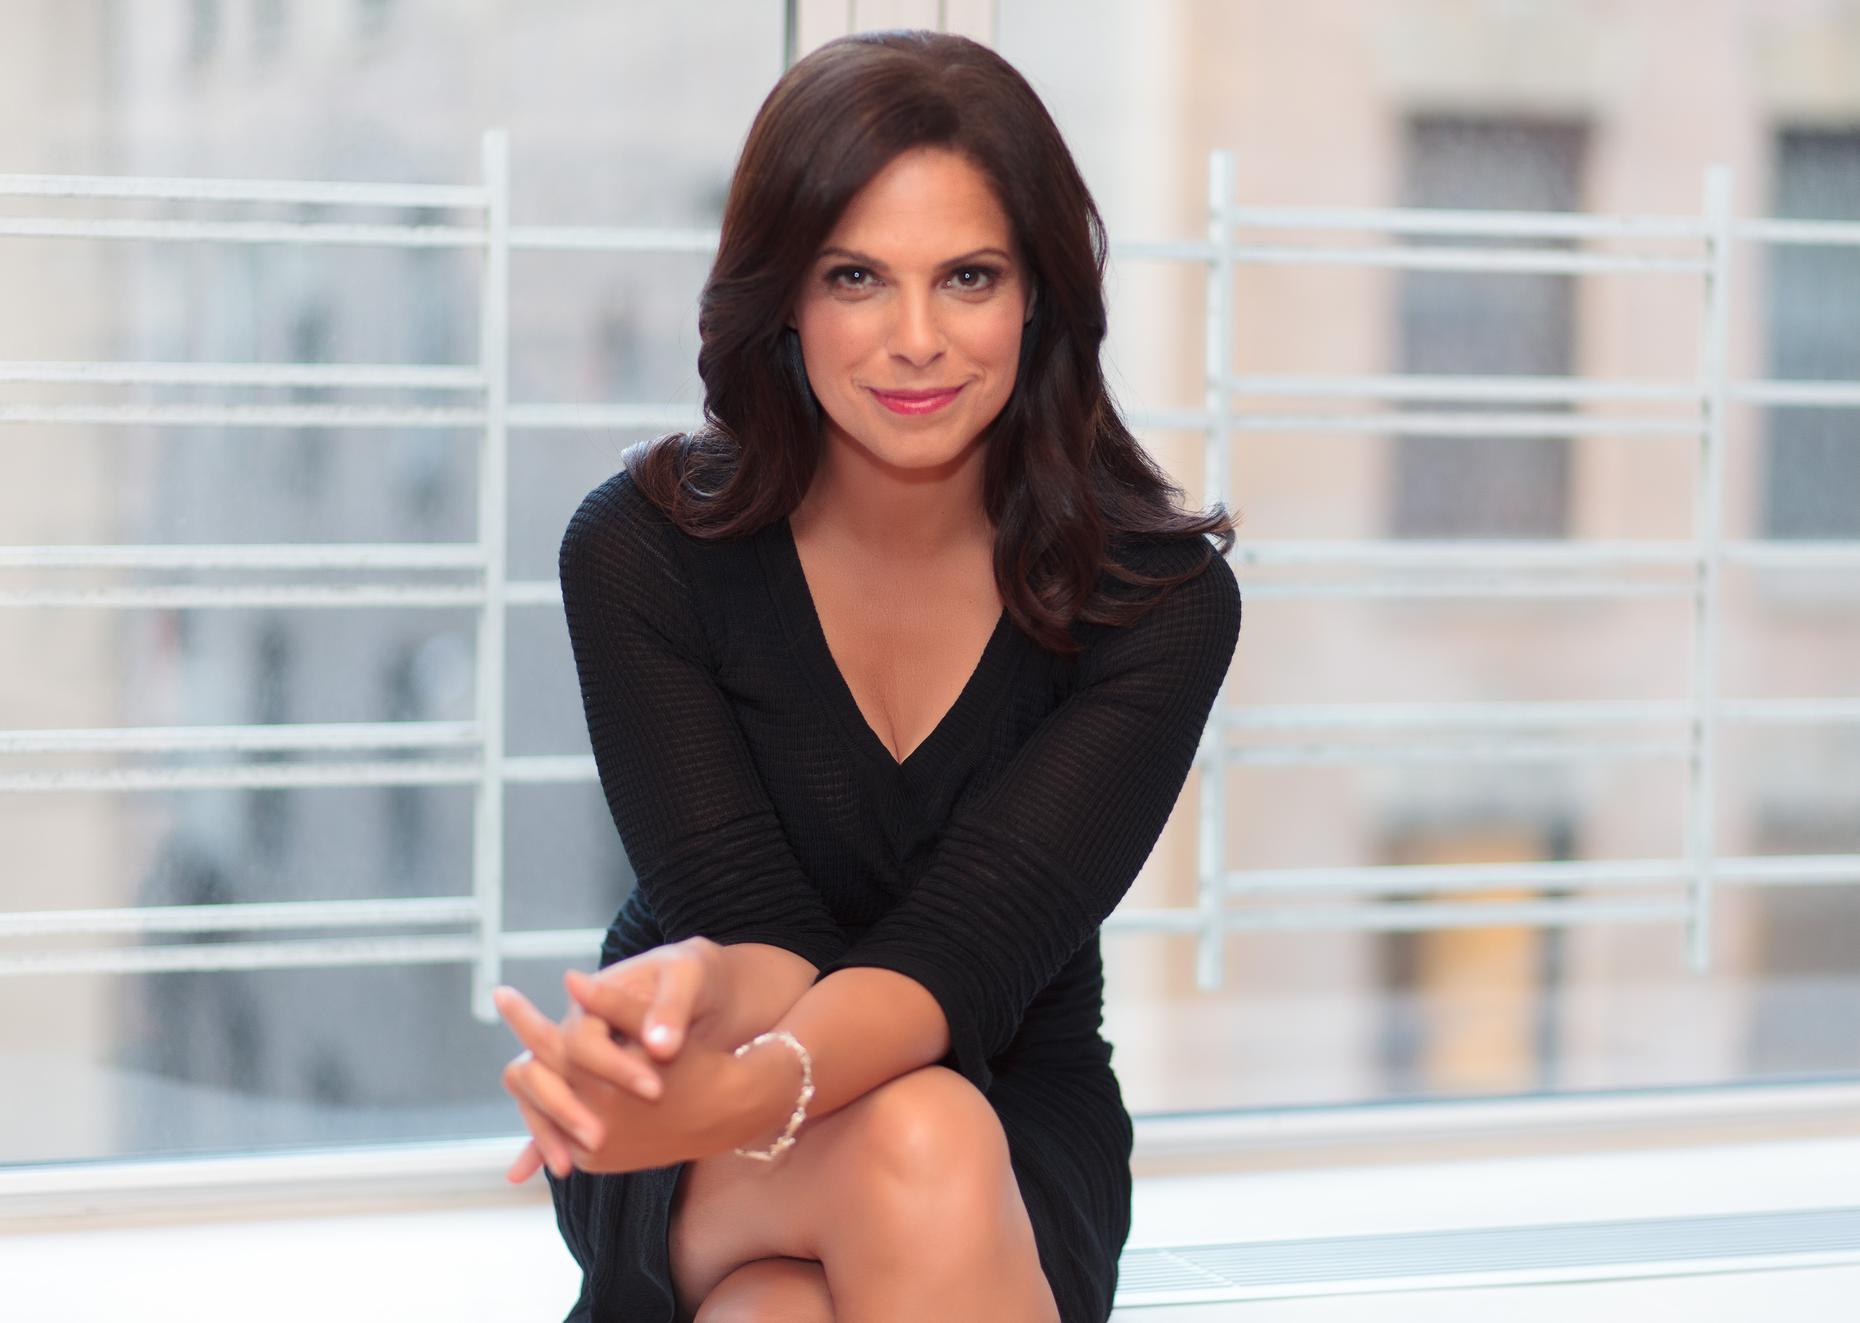 How I Got Over: A Conversation with Soledad O'Brien